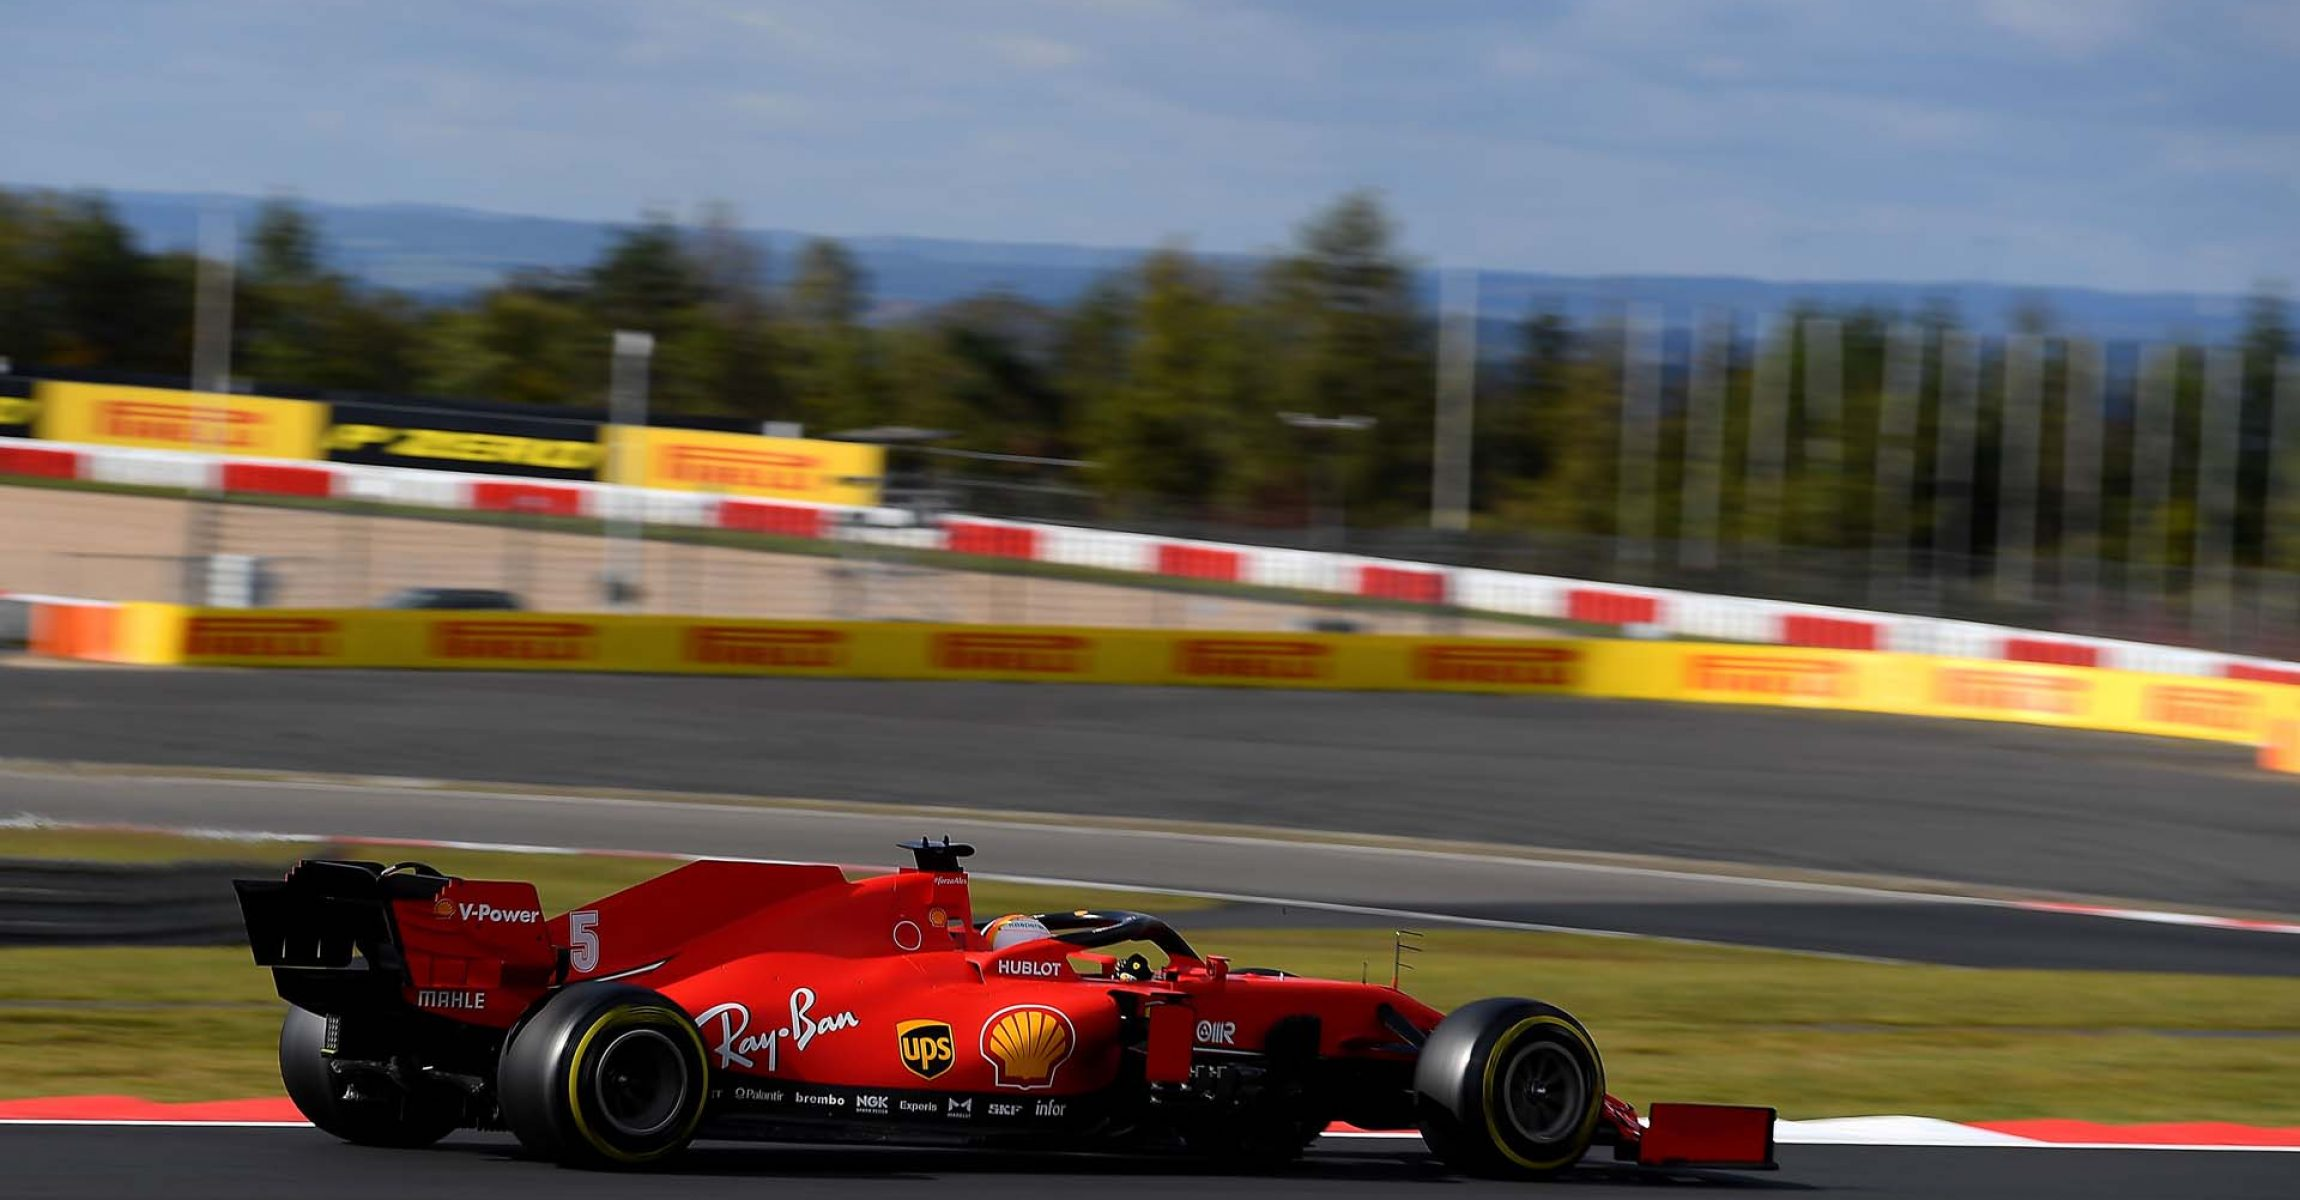 GP GERMANIA F1/2020 -  SABATO  10/10/2020   credit: @Scuderia Ferrari Press Office Sebastian Vettel